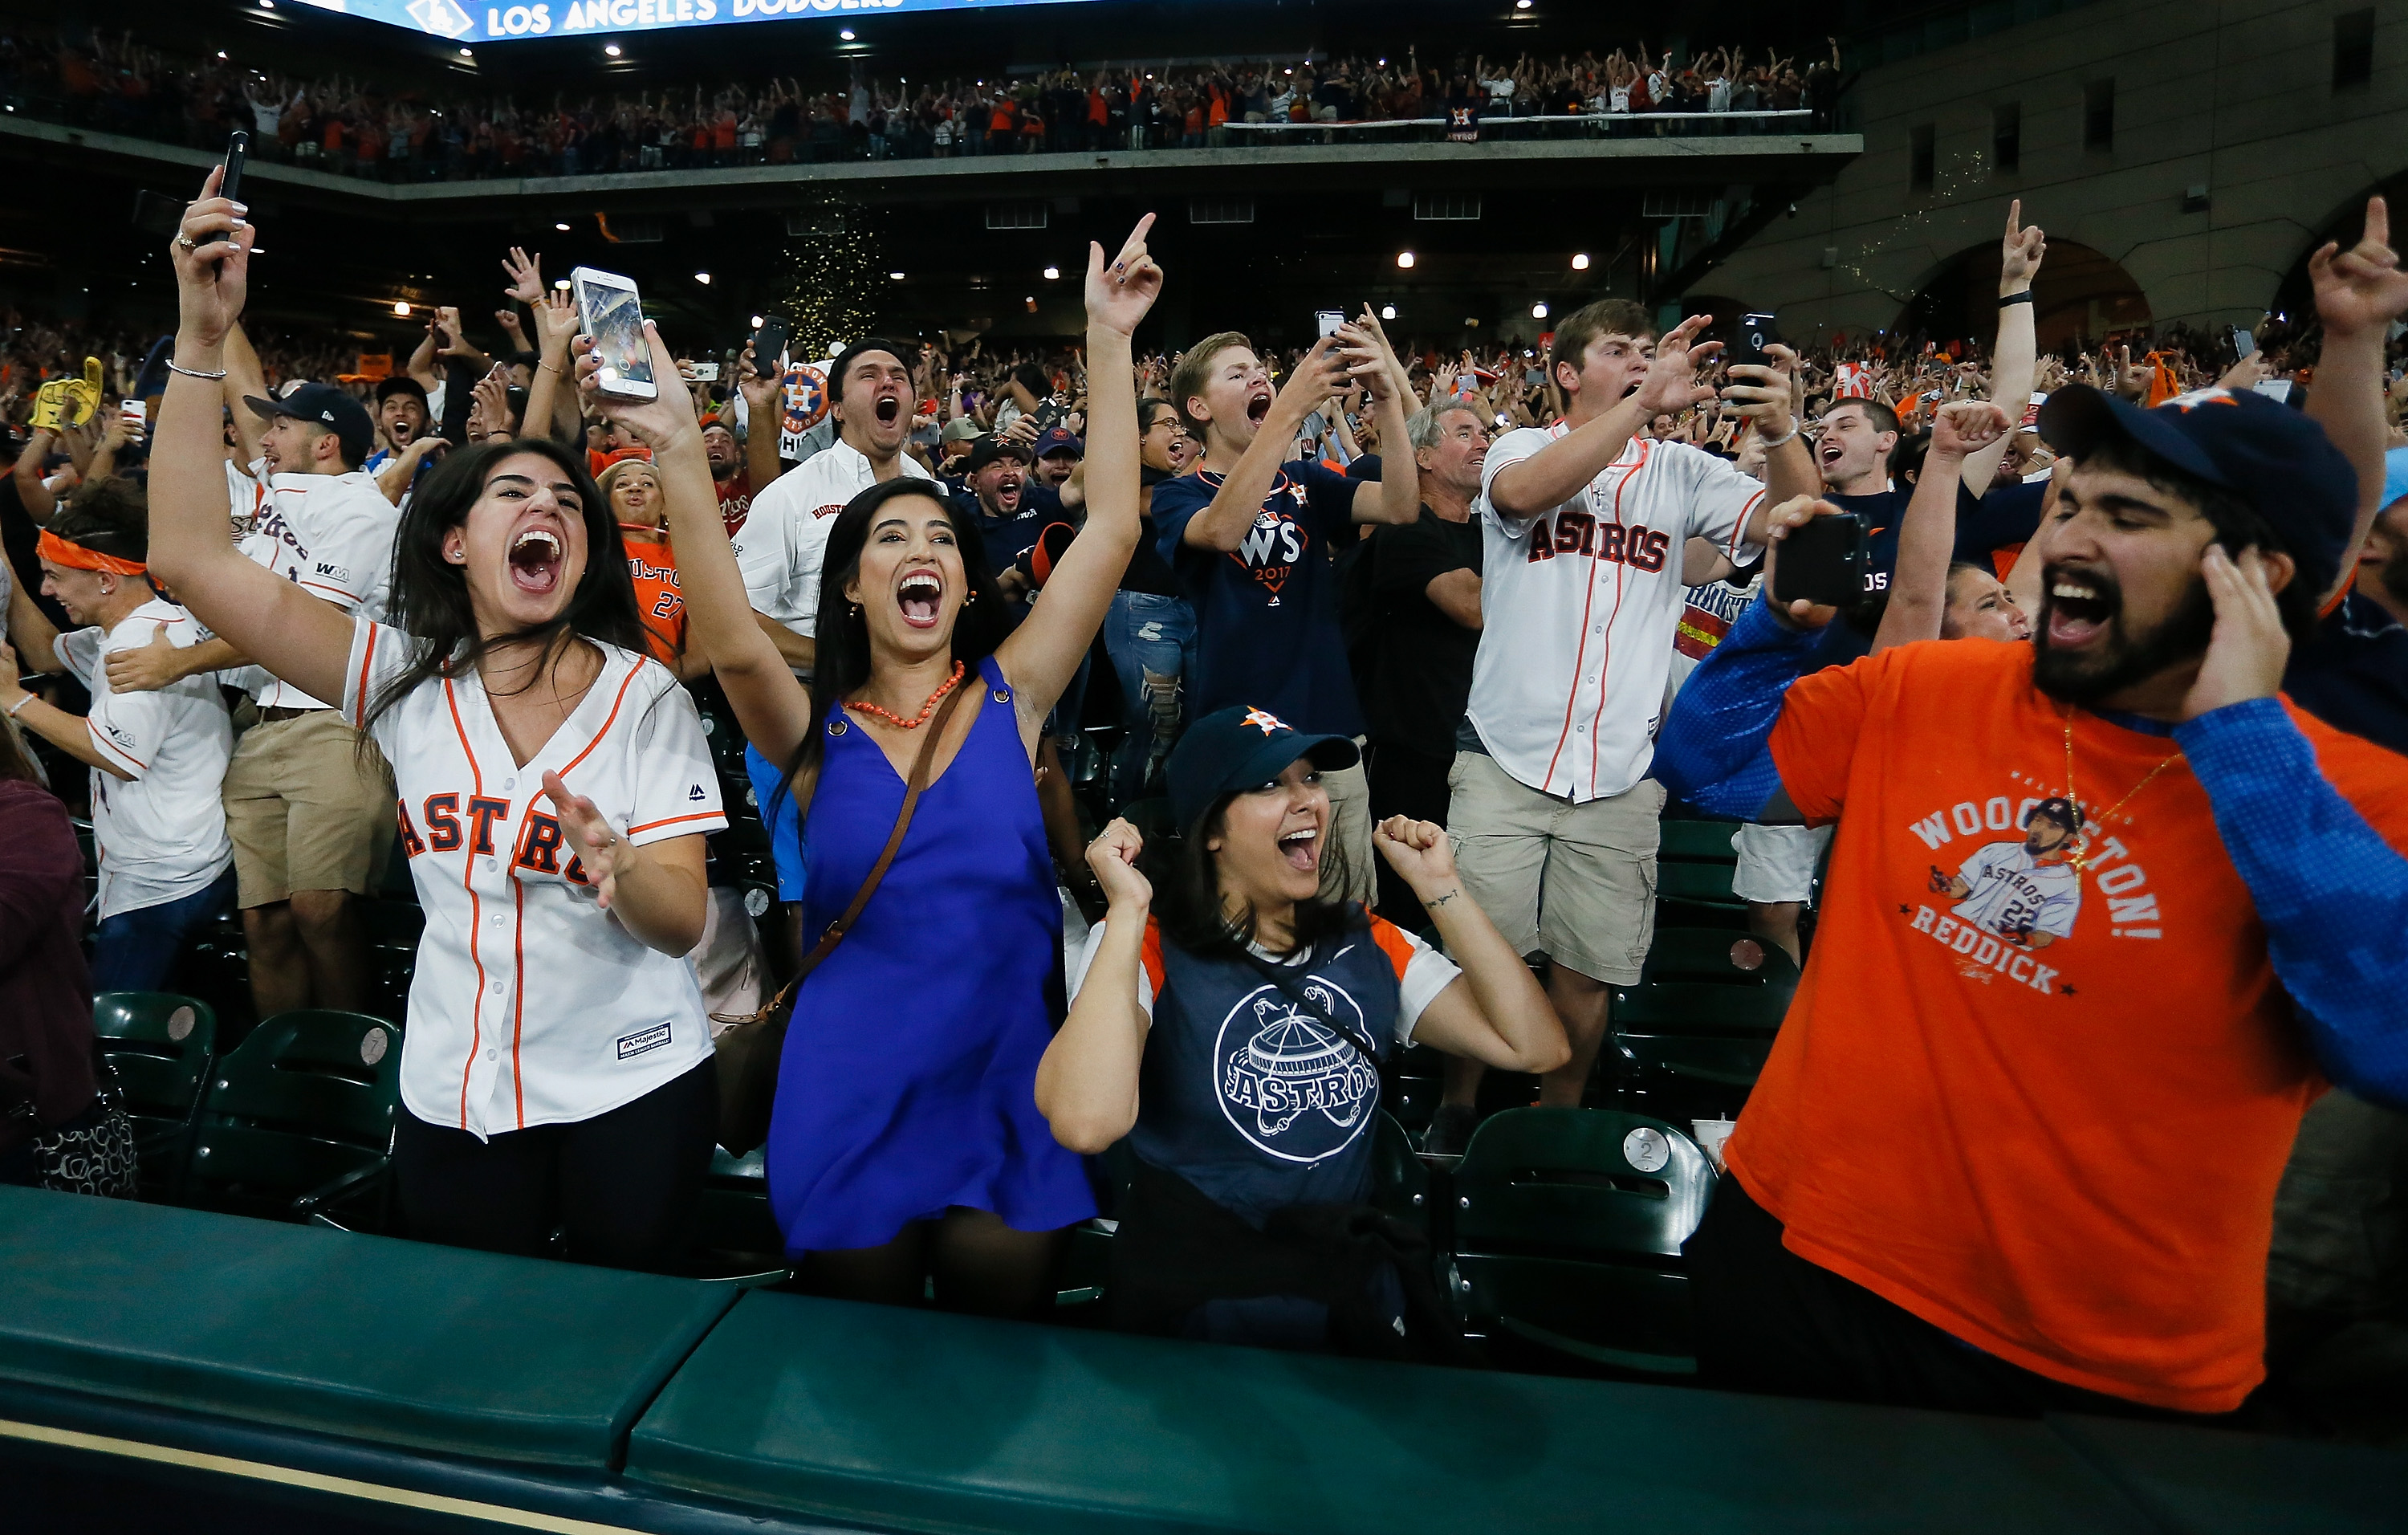 After Months of Devastation, the Astros' World Series Win Was an Ecstatic Night for Houston